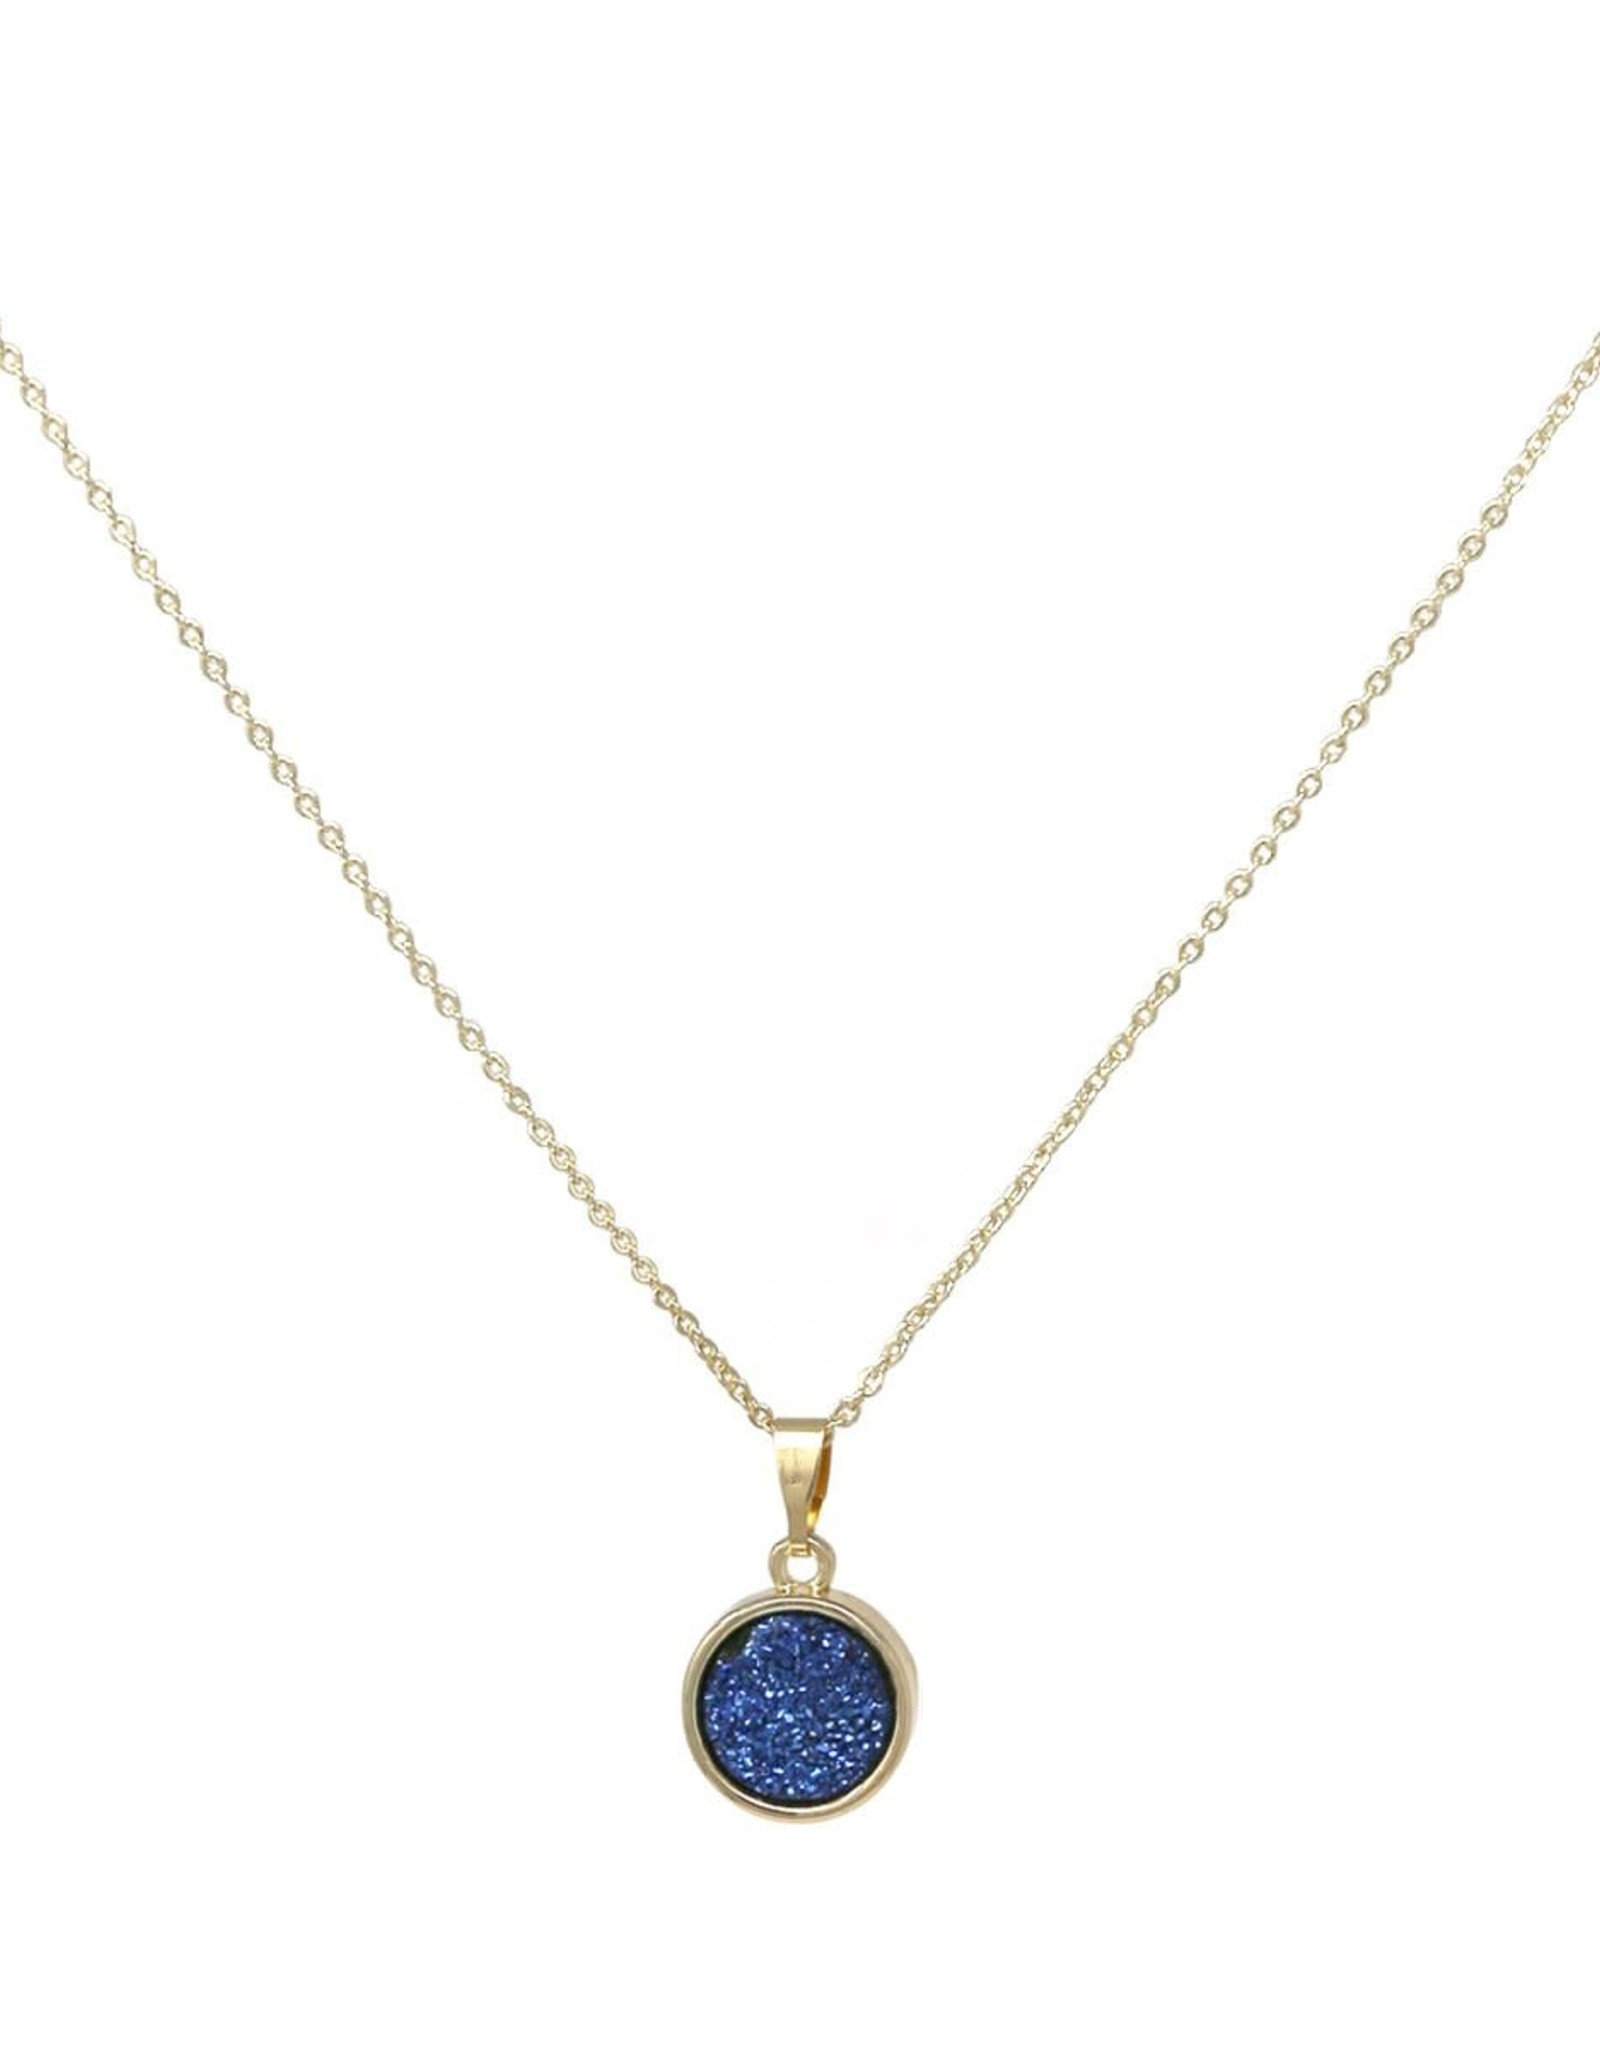 Round Druse Pendant Short Necklace - Blue